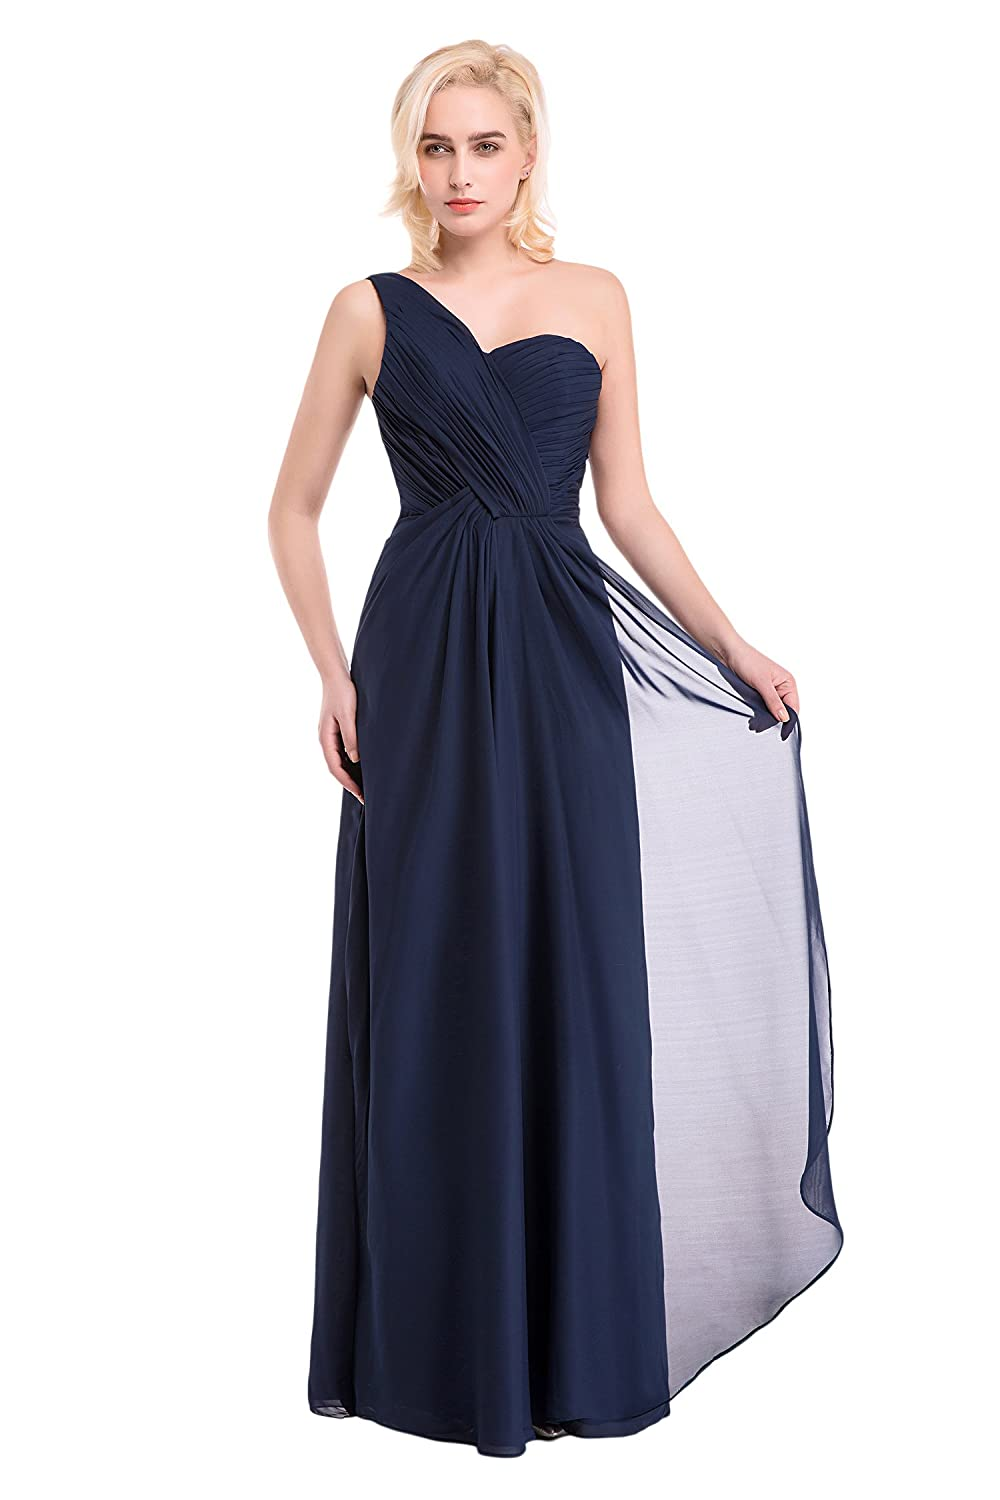 Bridal_Mall Women's One Shoulder Ruffles Evening Party Dress